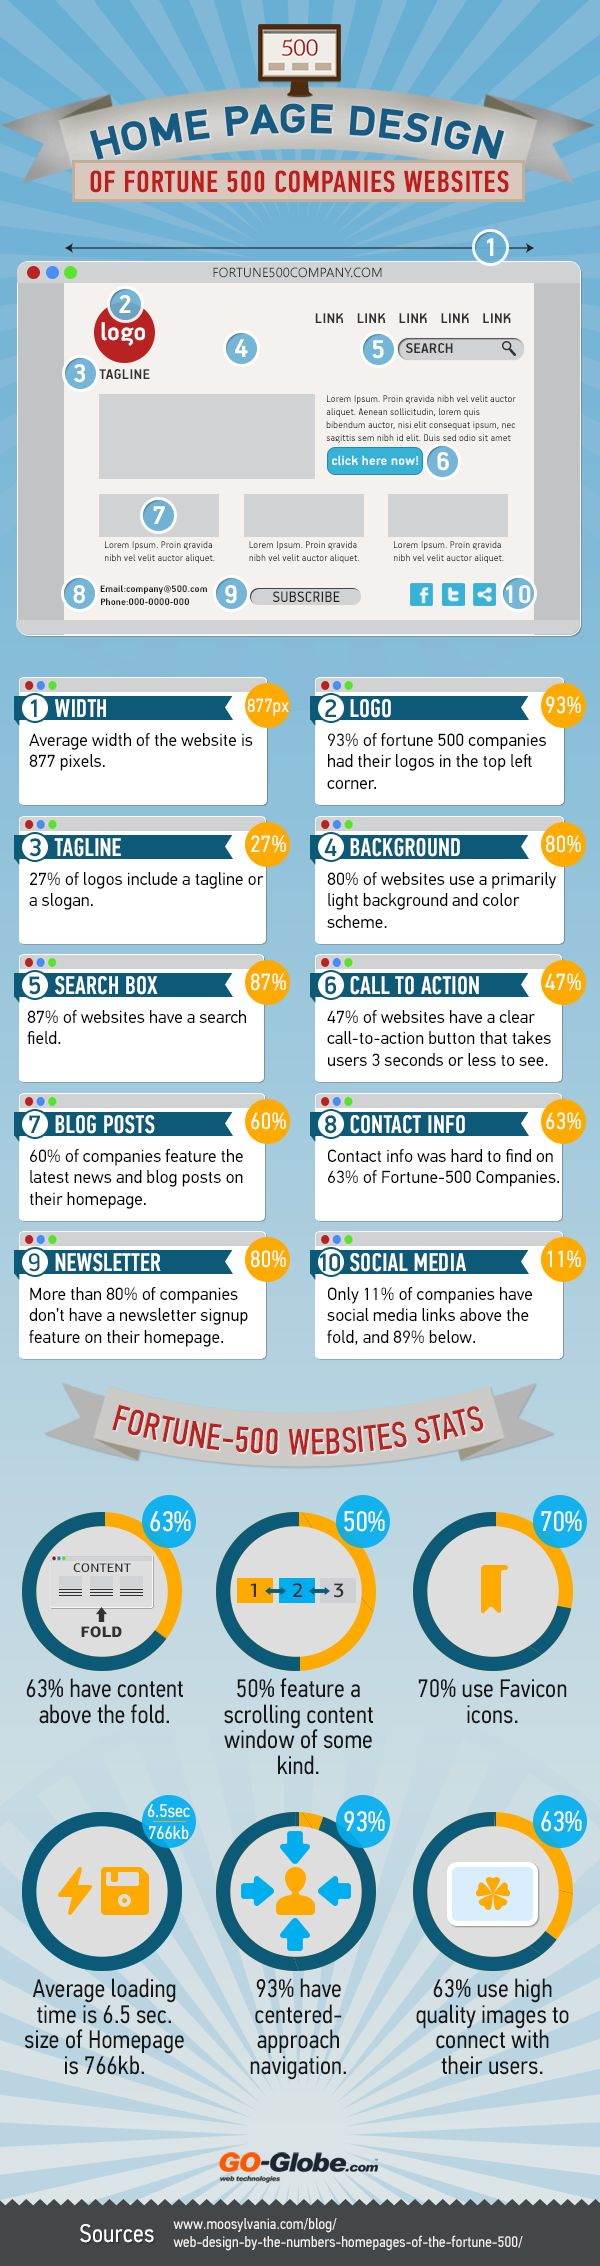 To get to Fortune 500 status you have to follow the examples of those that have made it! #infographic #webdesign